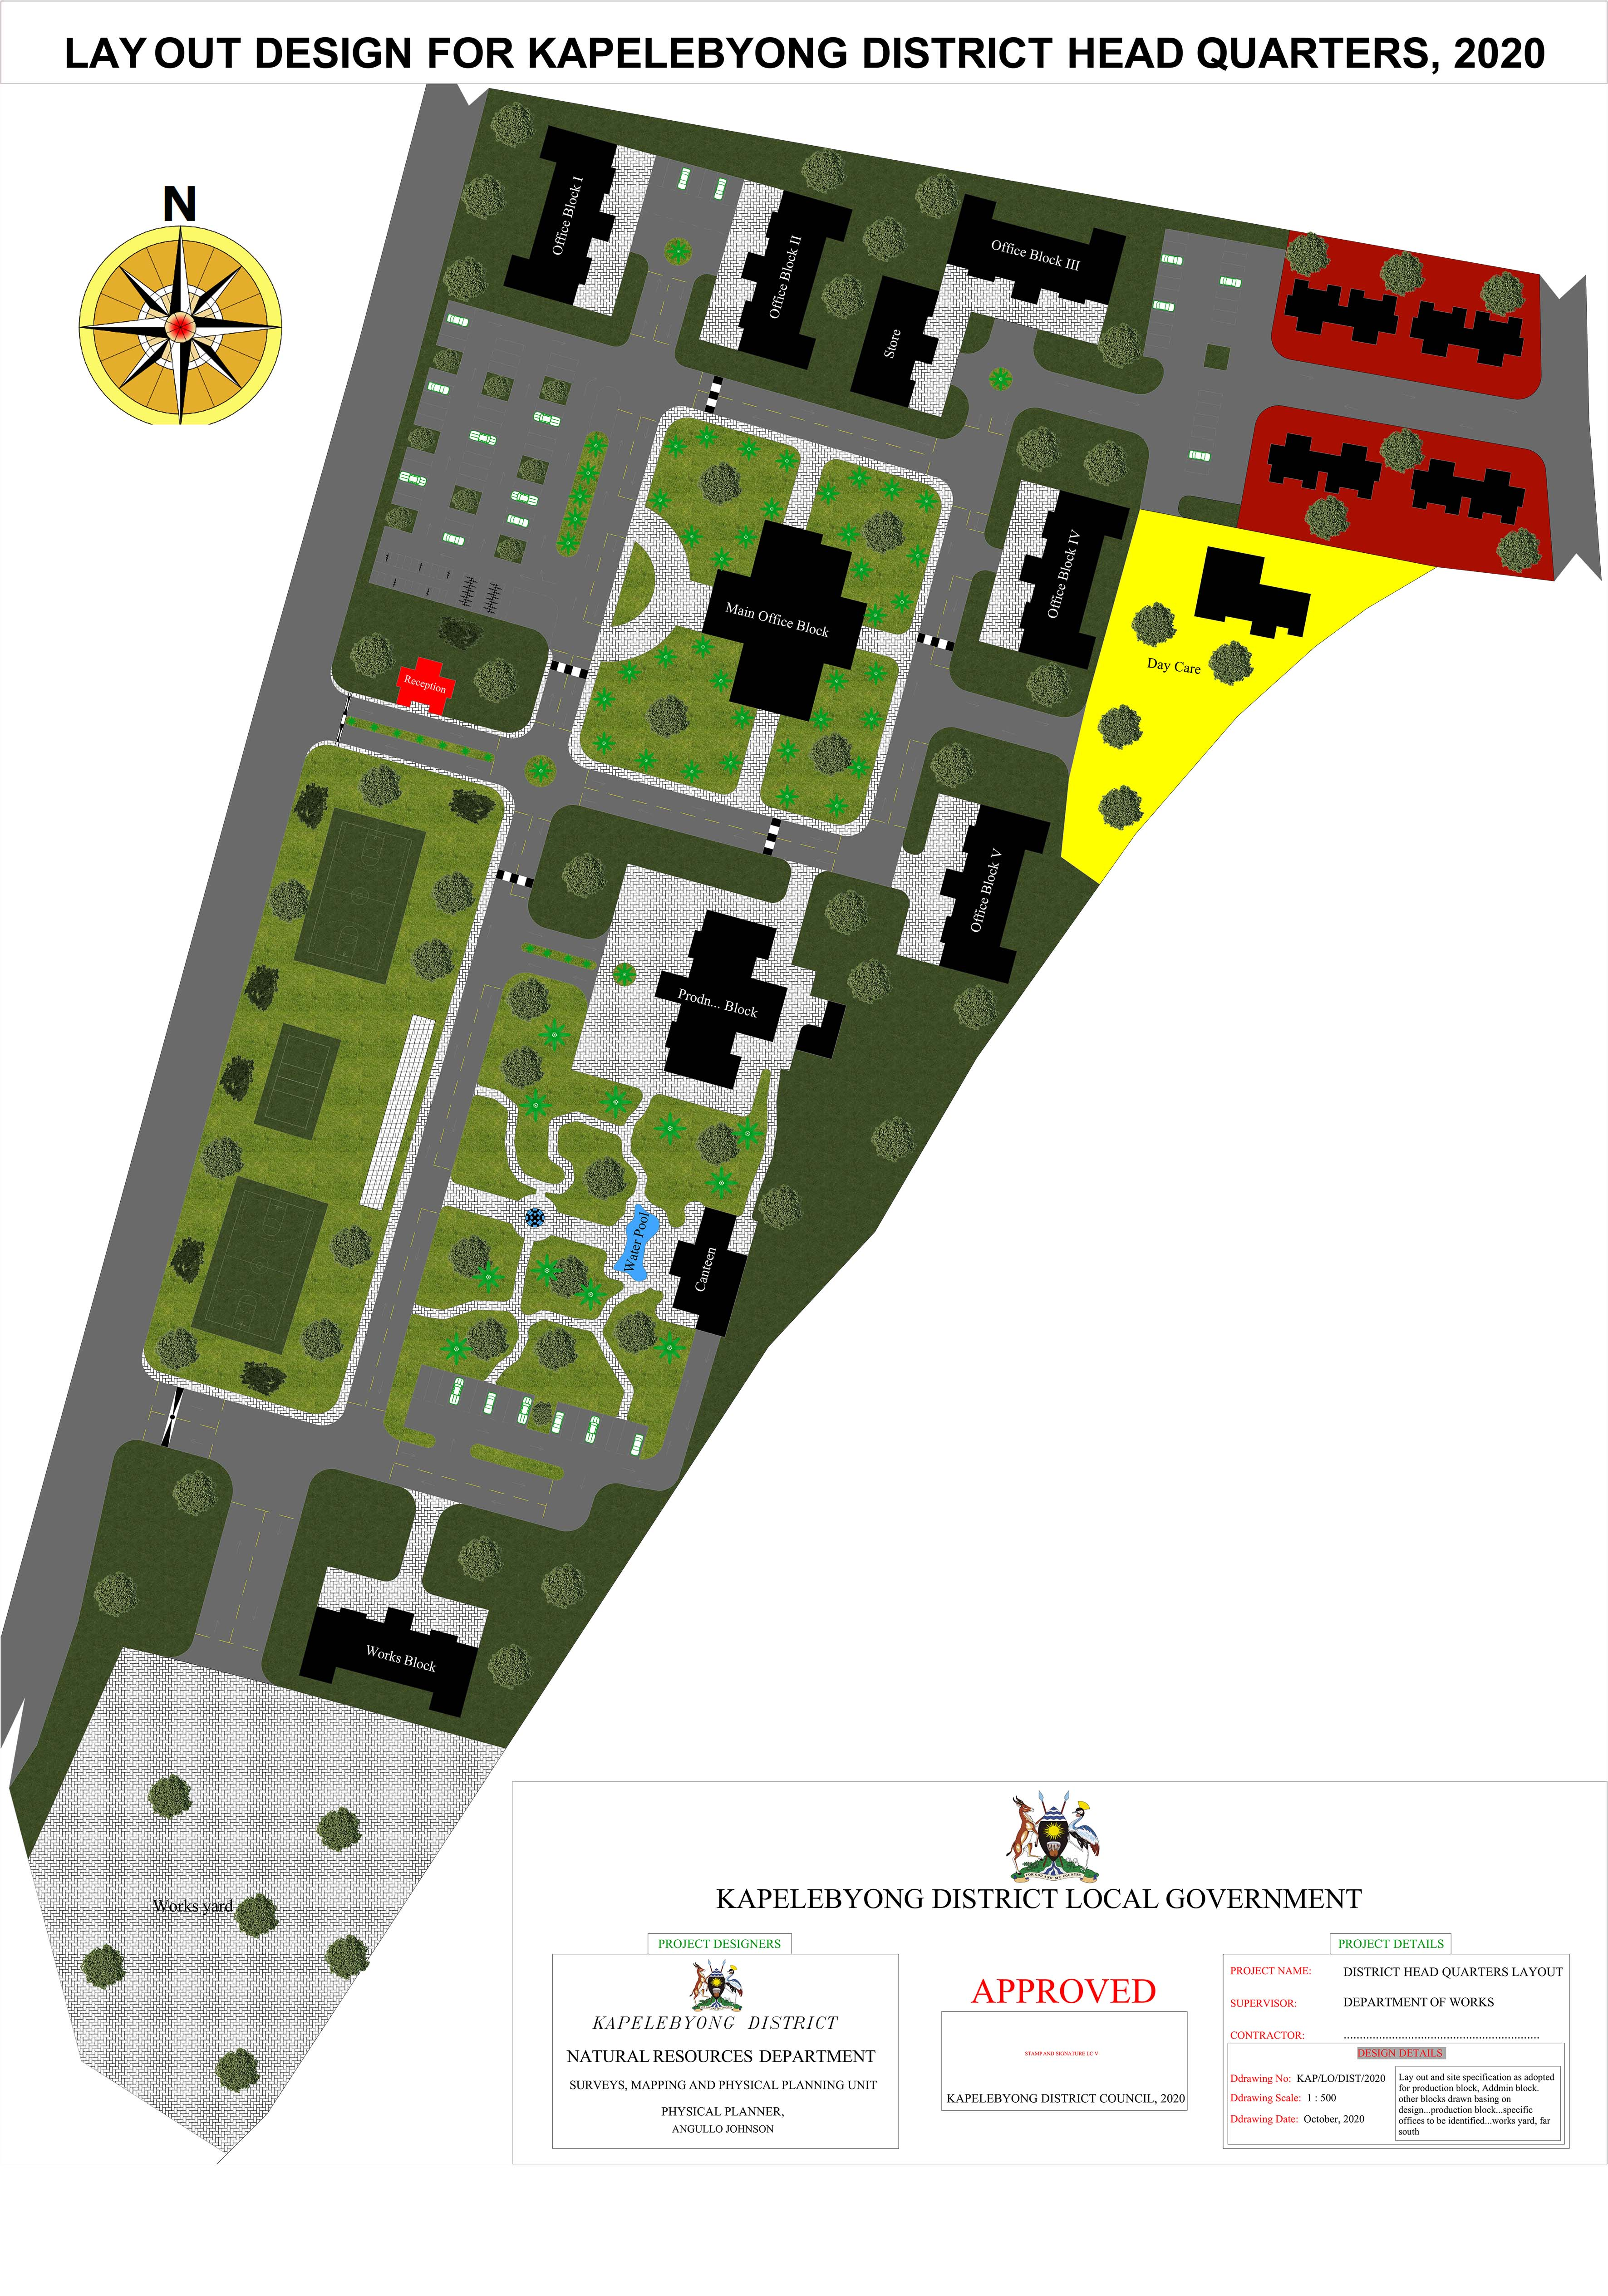 The approved Kapelebyong district headquarters layout design